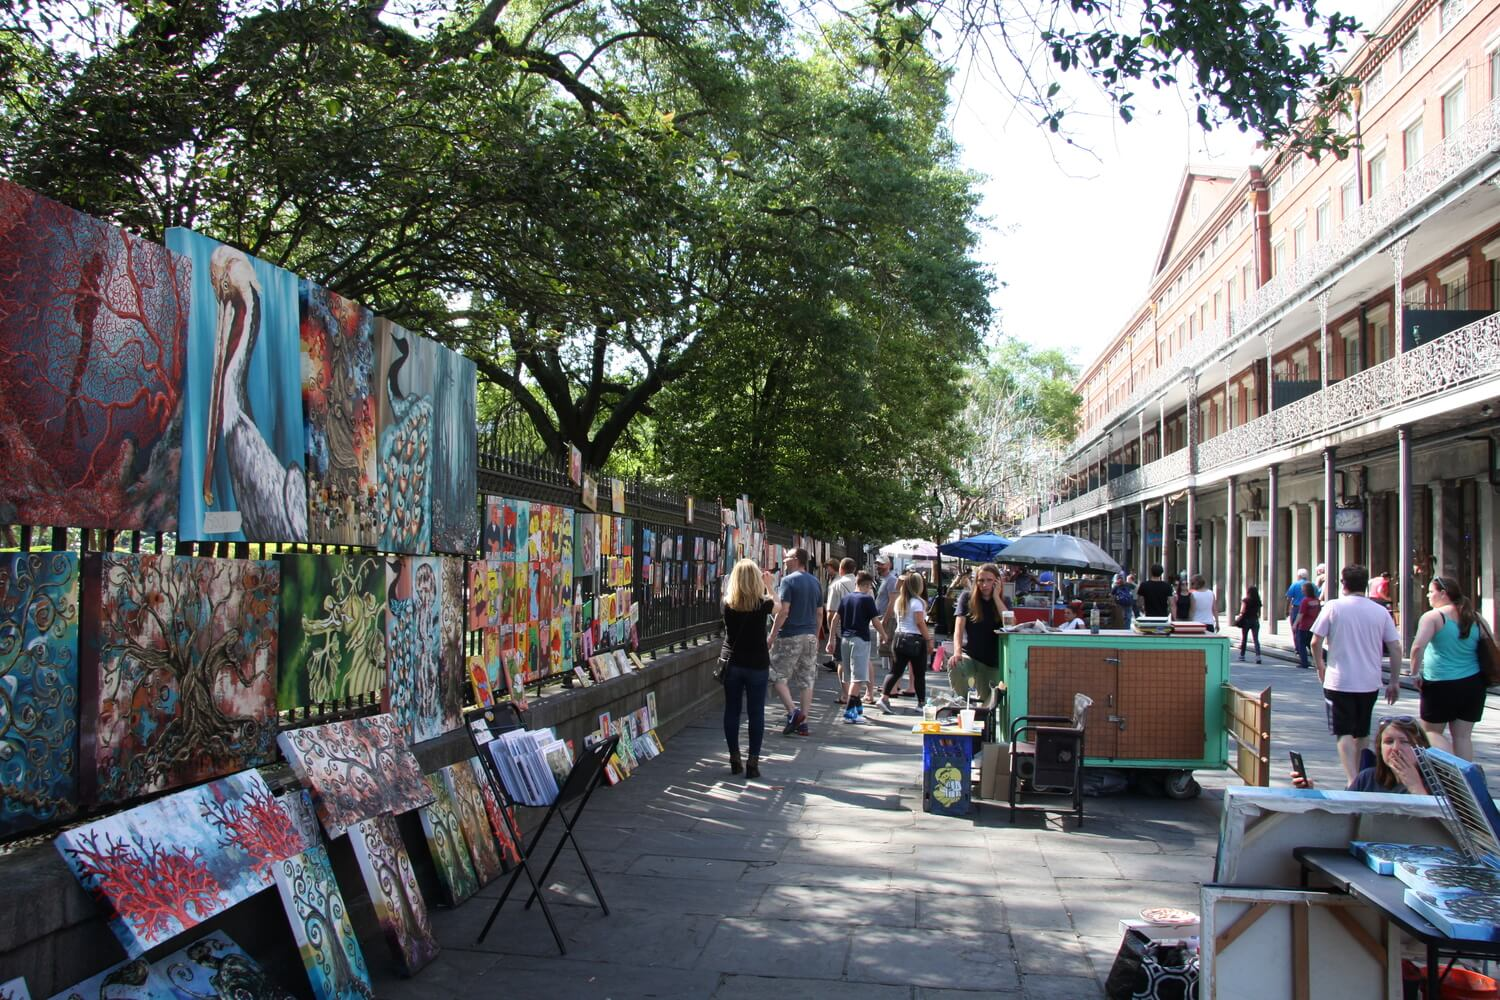 Street art around the French Qaurter's Jackson Square. #3 in Best Things to Do in the French Quarter.